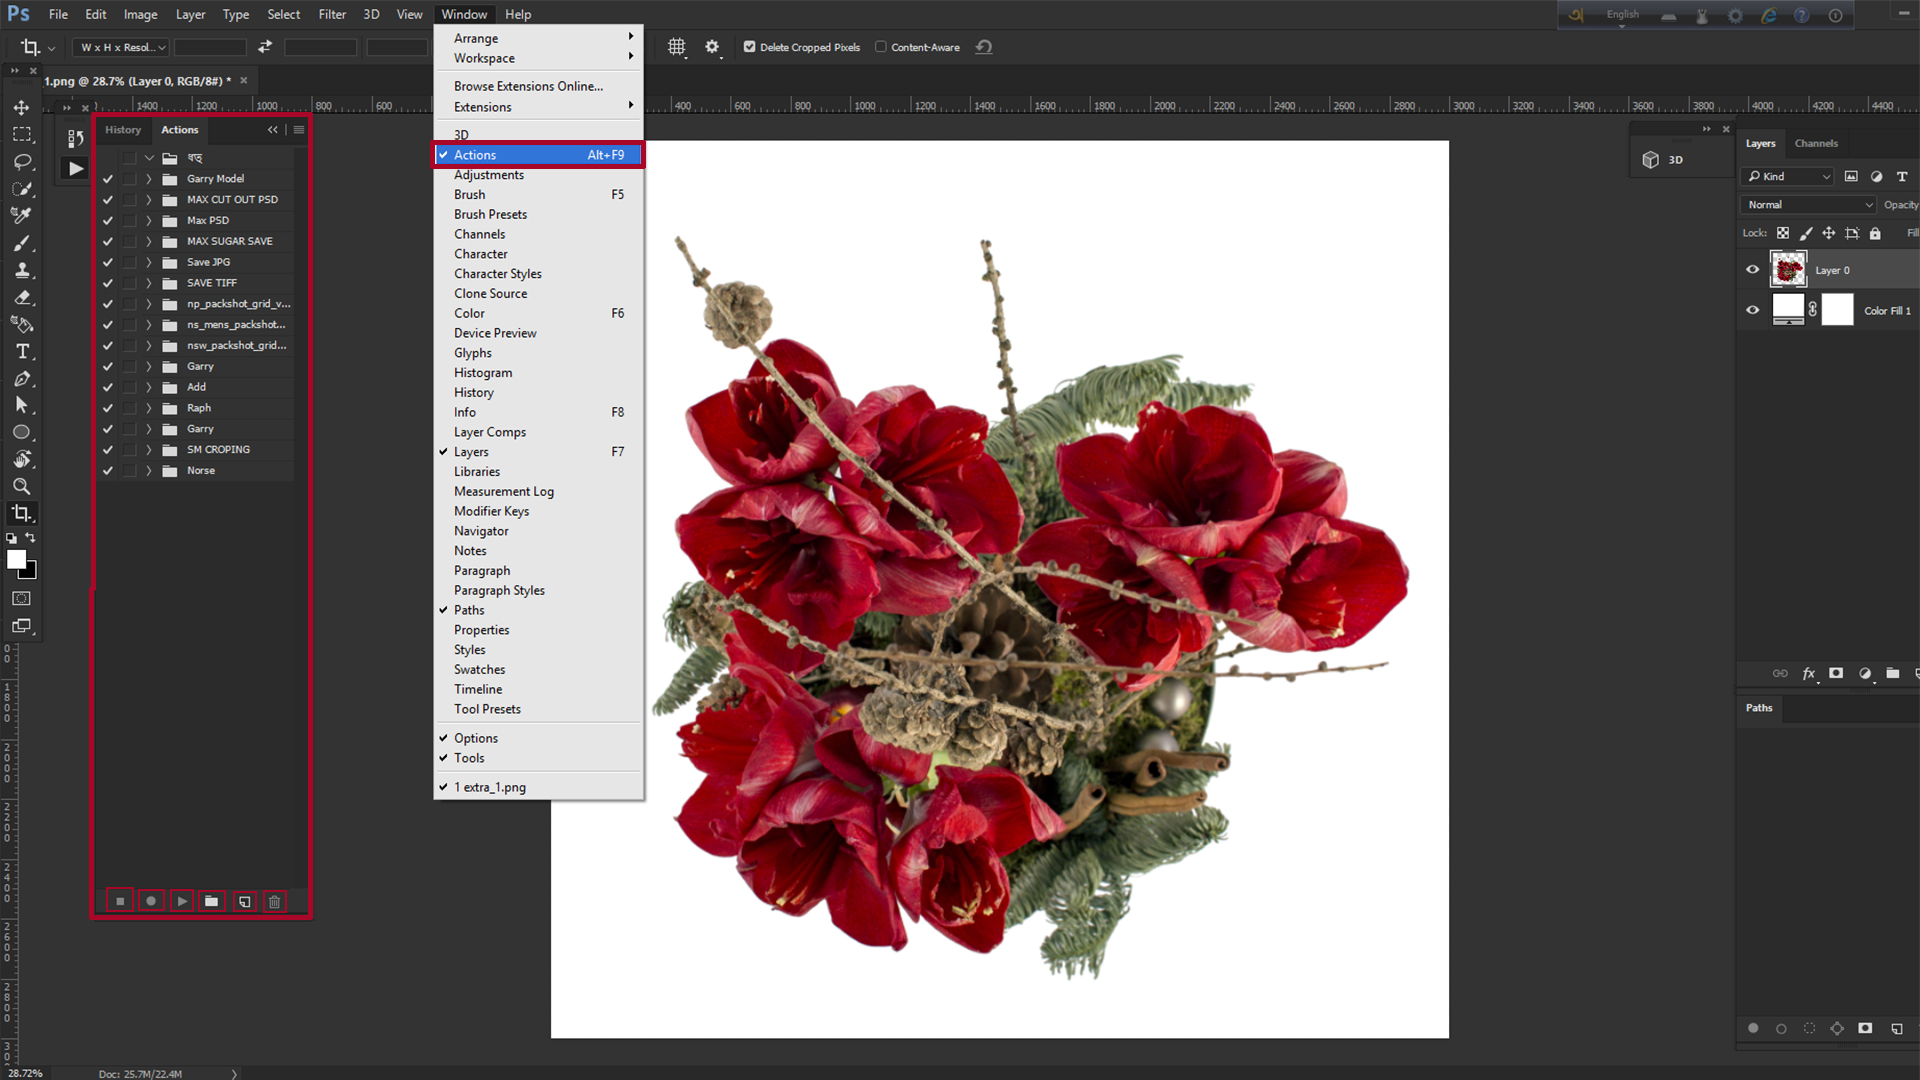 Create-an-Action-in-Adobe-Photoshop